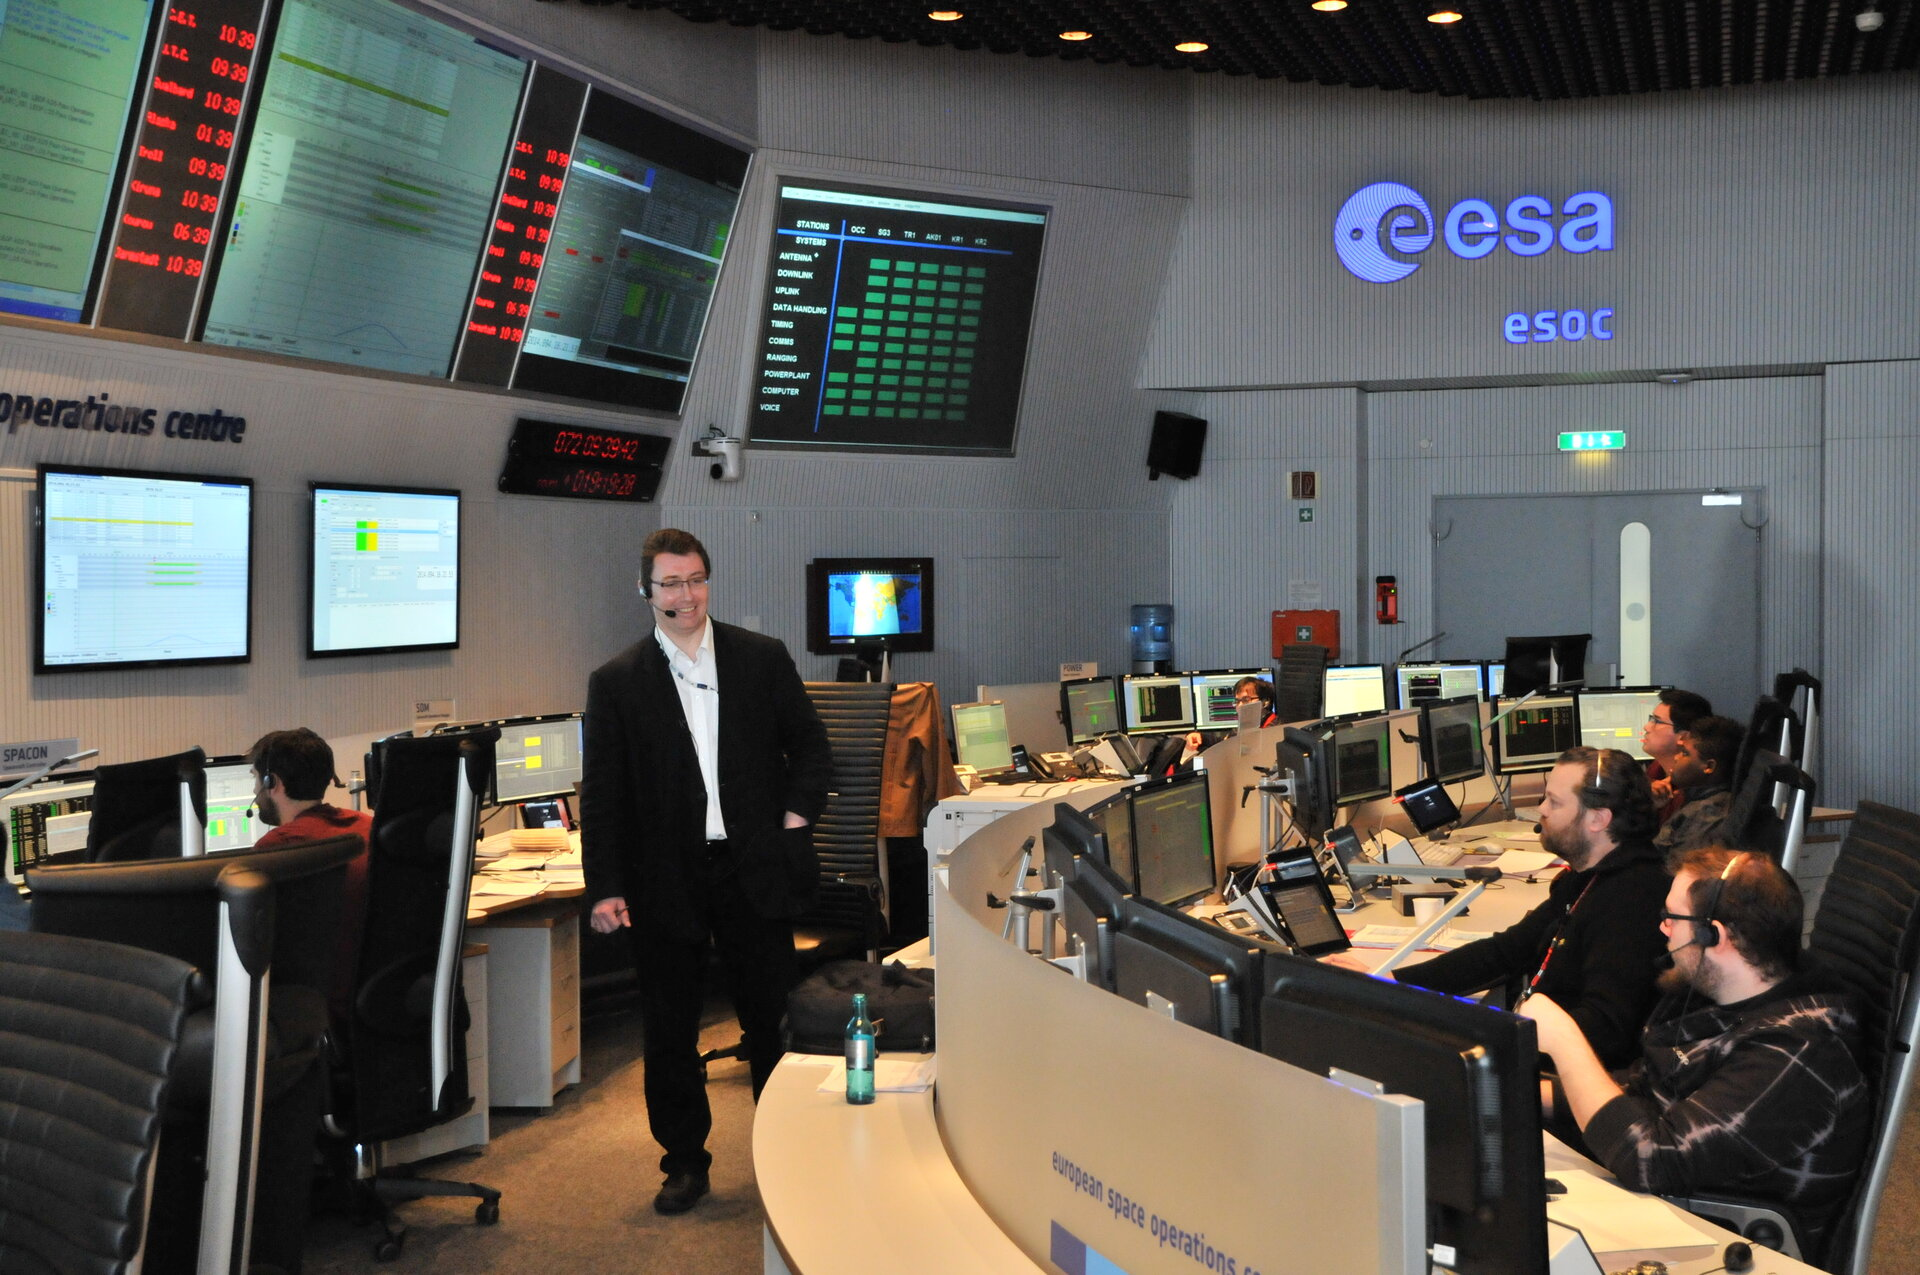 Sentinel-1 mission control team in training